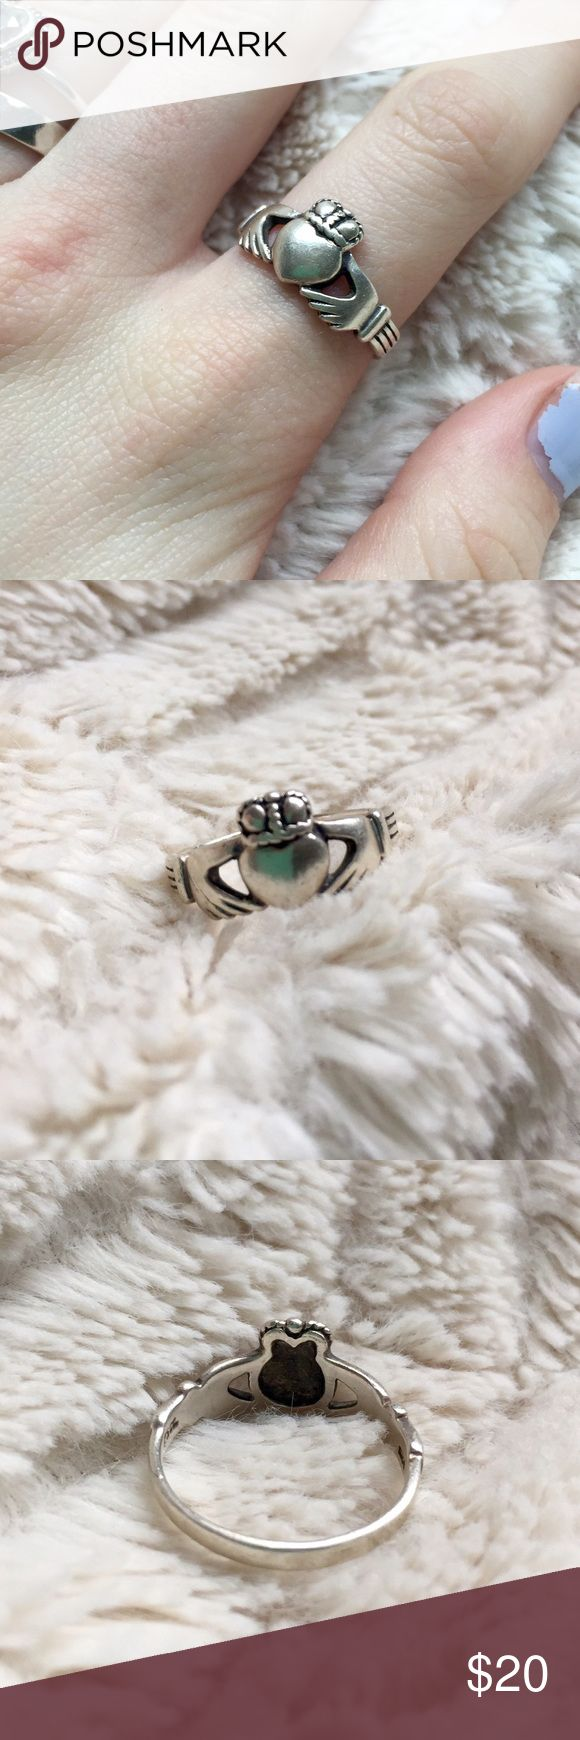 Selling this Vintage Sterling Silver Irish Claddagh Heart Ring on Poshmark! My username is: herroyalshyness. #shopmycloset #poshmark #fashion #shopping #style #forsale #Vintage #Jewelry